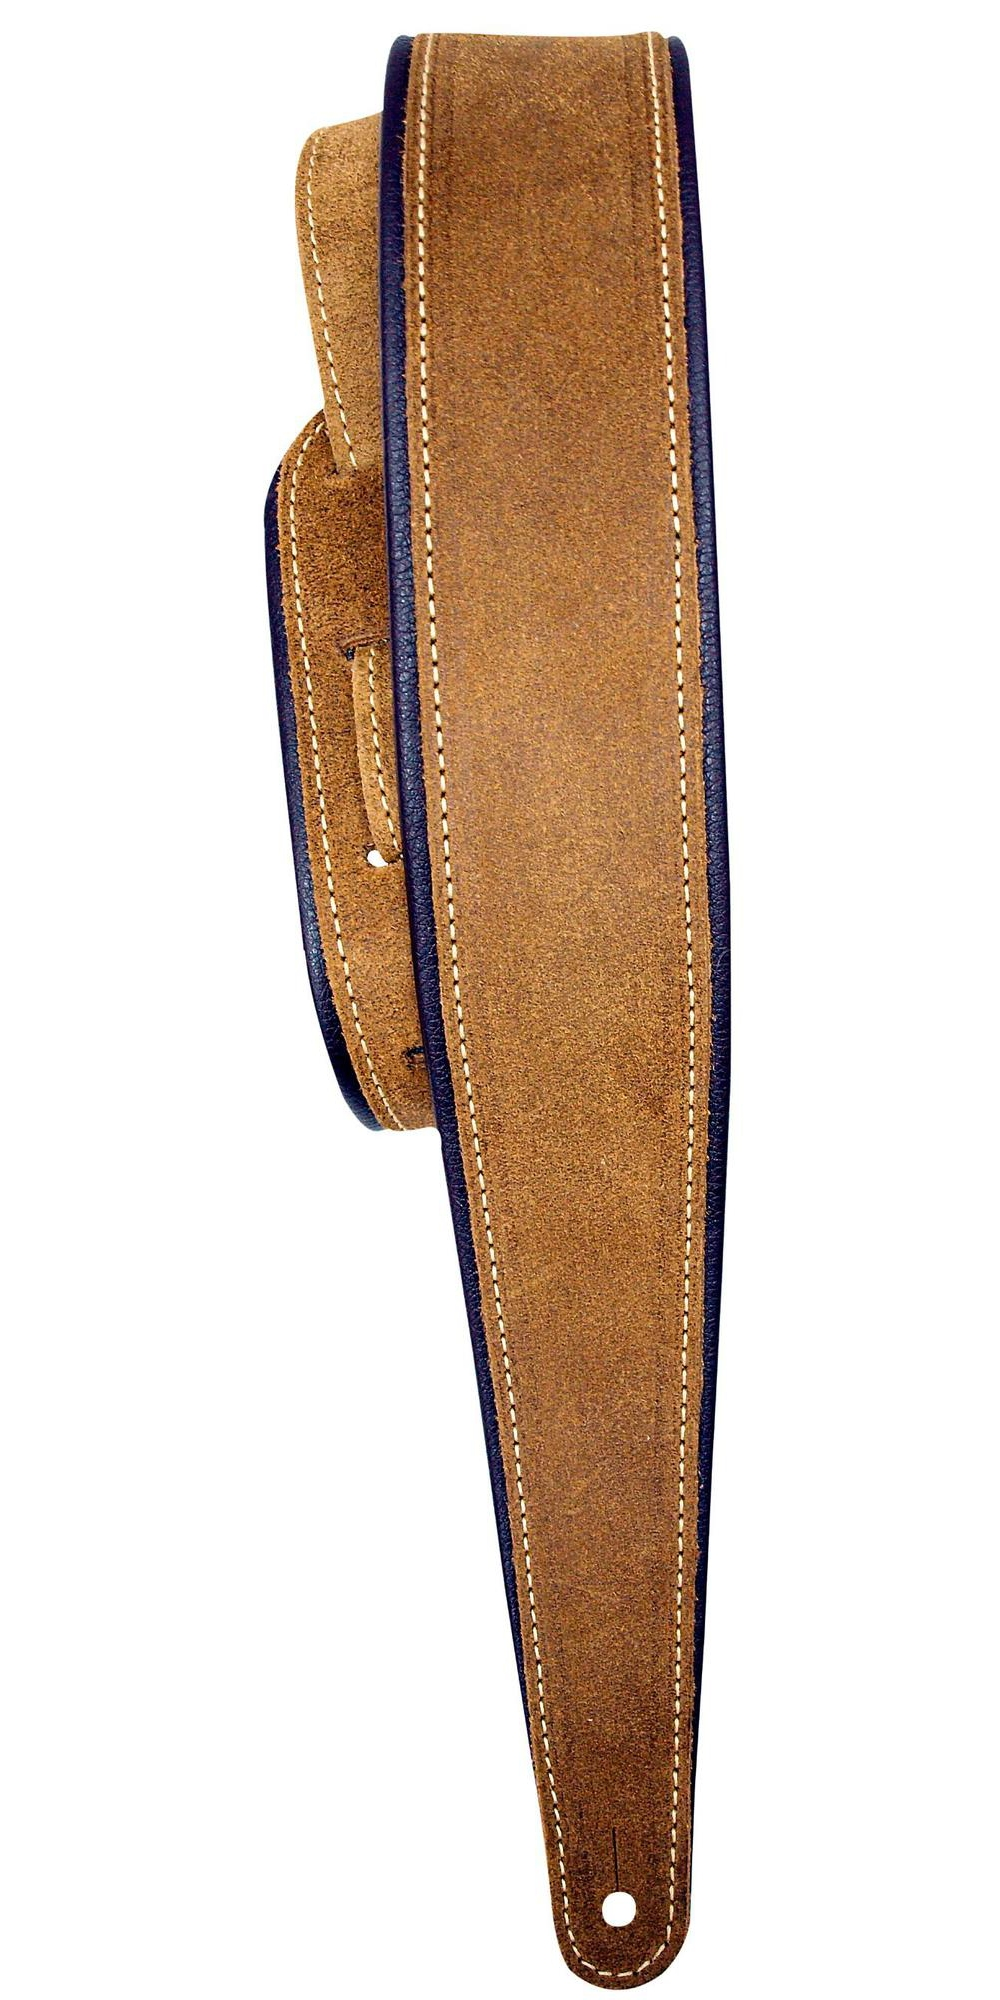 """LM Products 2.5"""" Distressed Suede Guitar Strap with Rolled Edge by LM Products"""